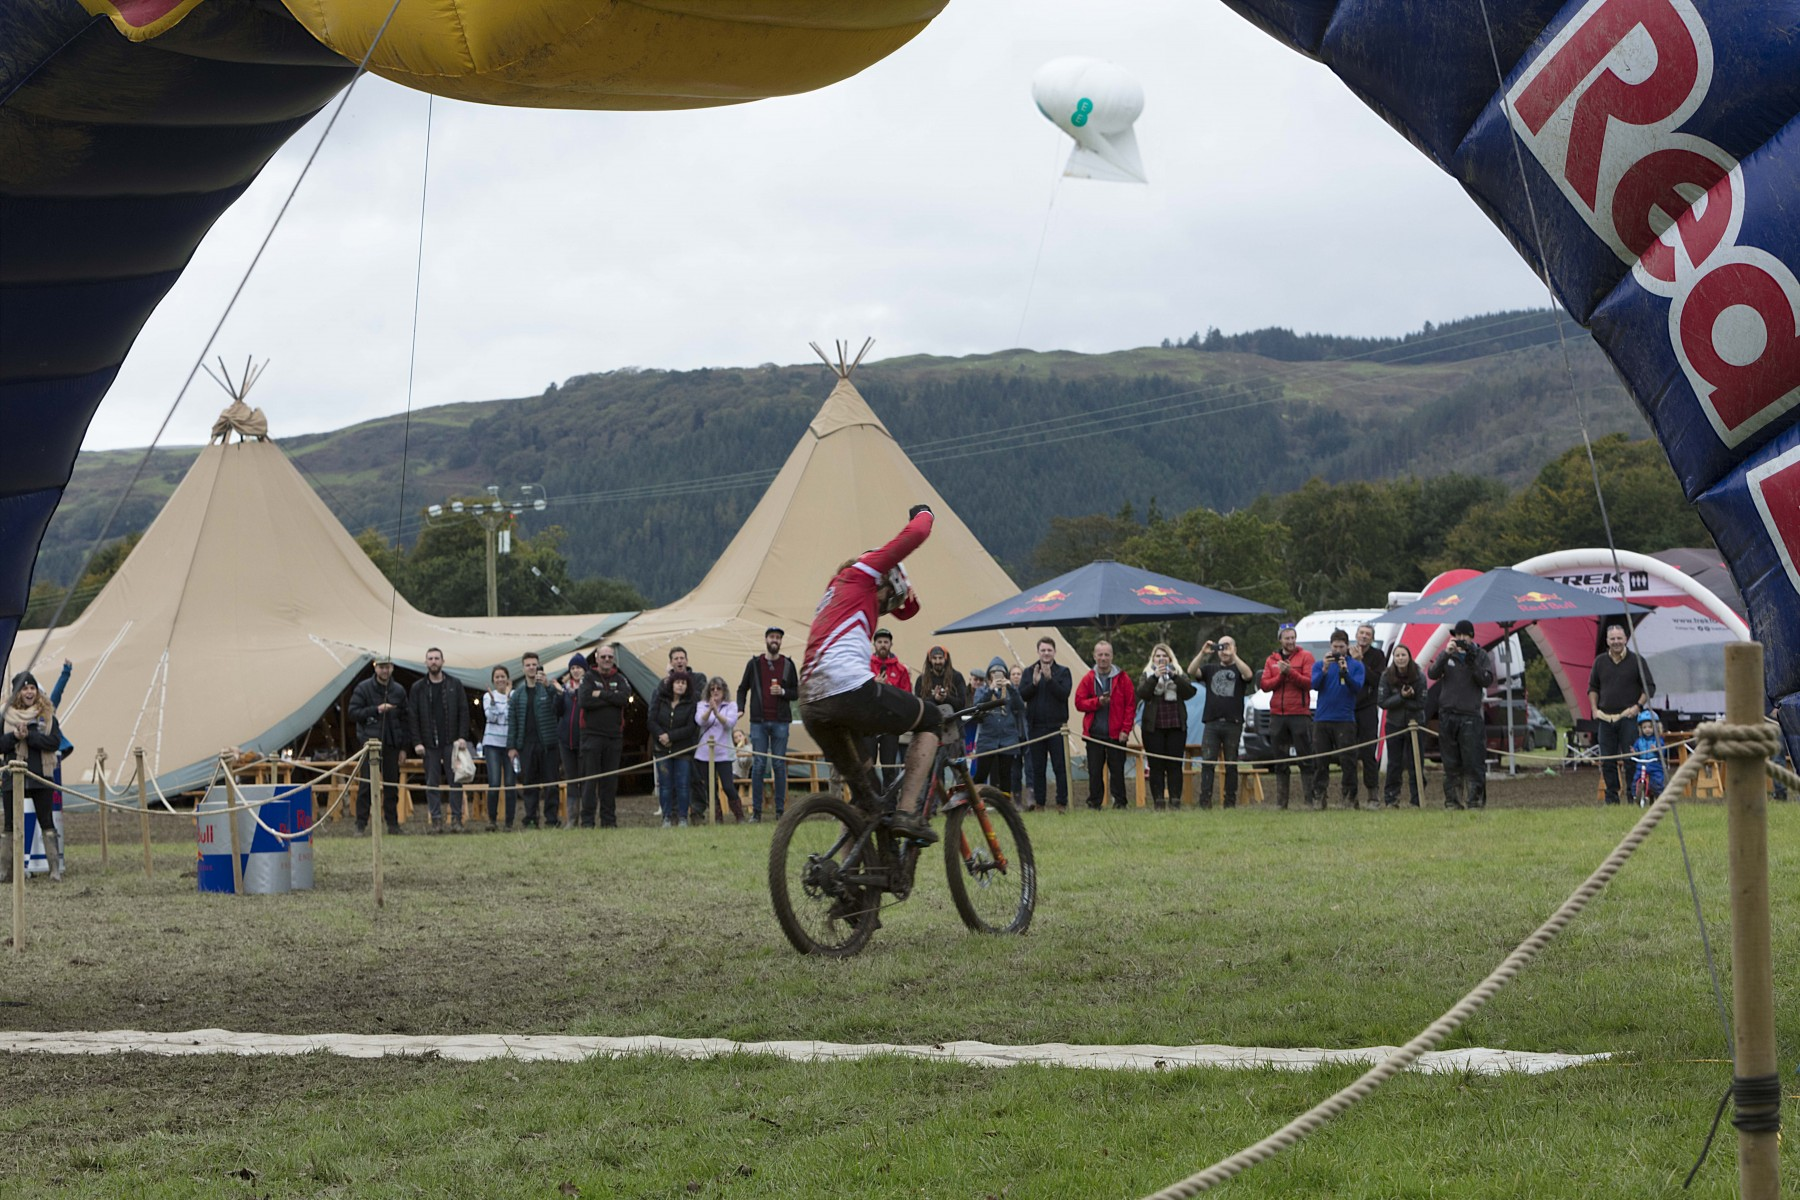 The winner of Red Bull Foxhunt event